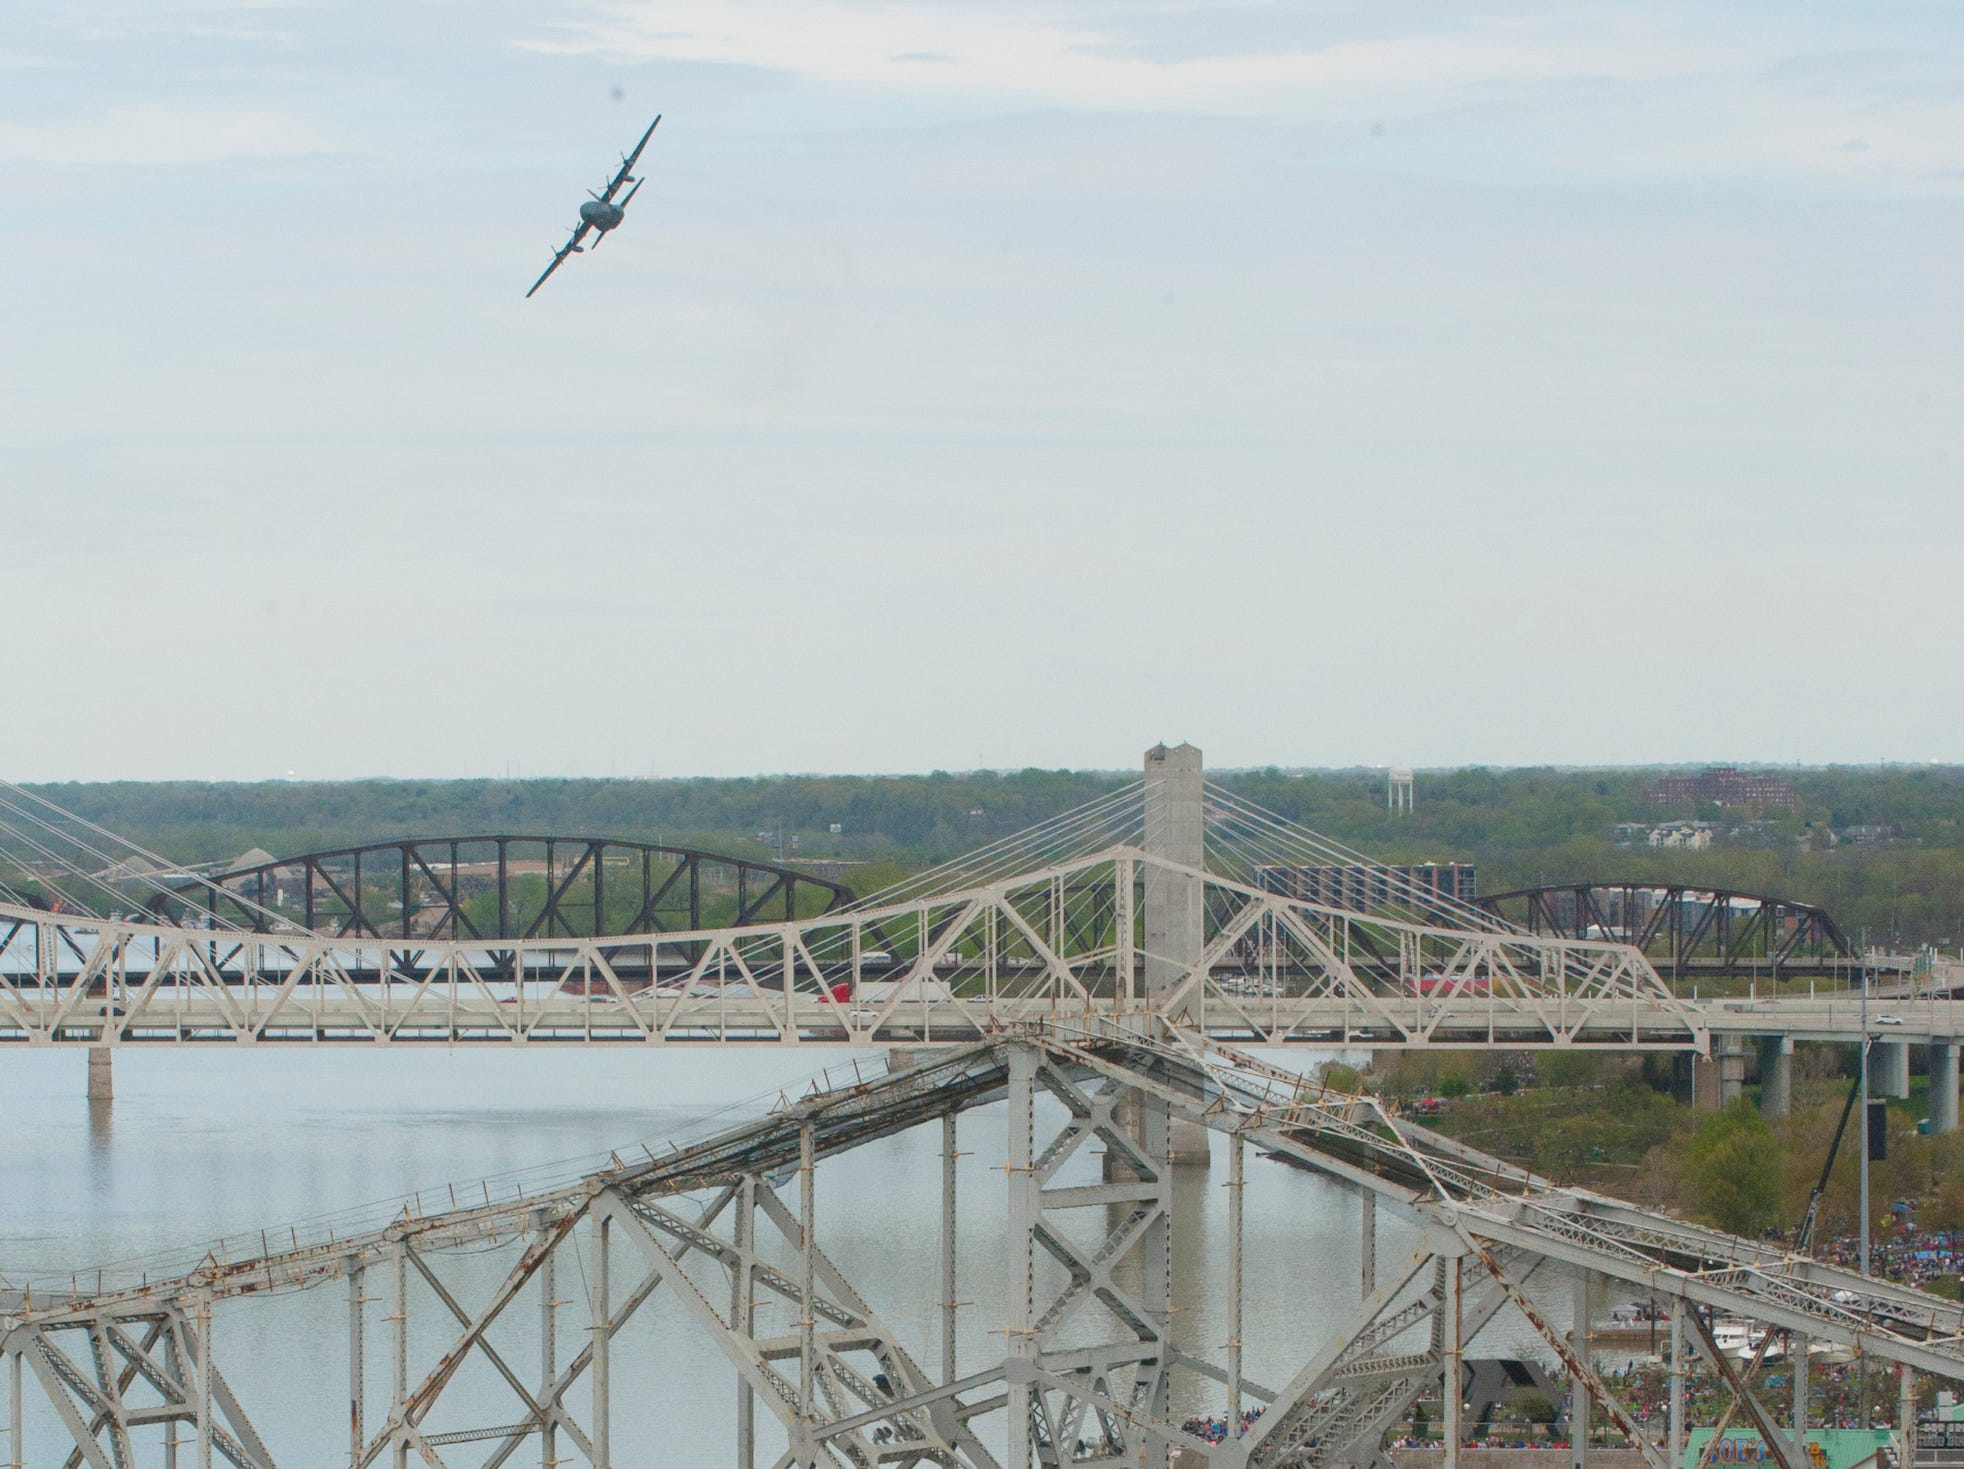 Canadian CH-130 flies over the I-65 bridges at the 2019 Thunder Over Louisville Air Show.13 April 2019